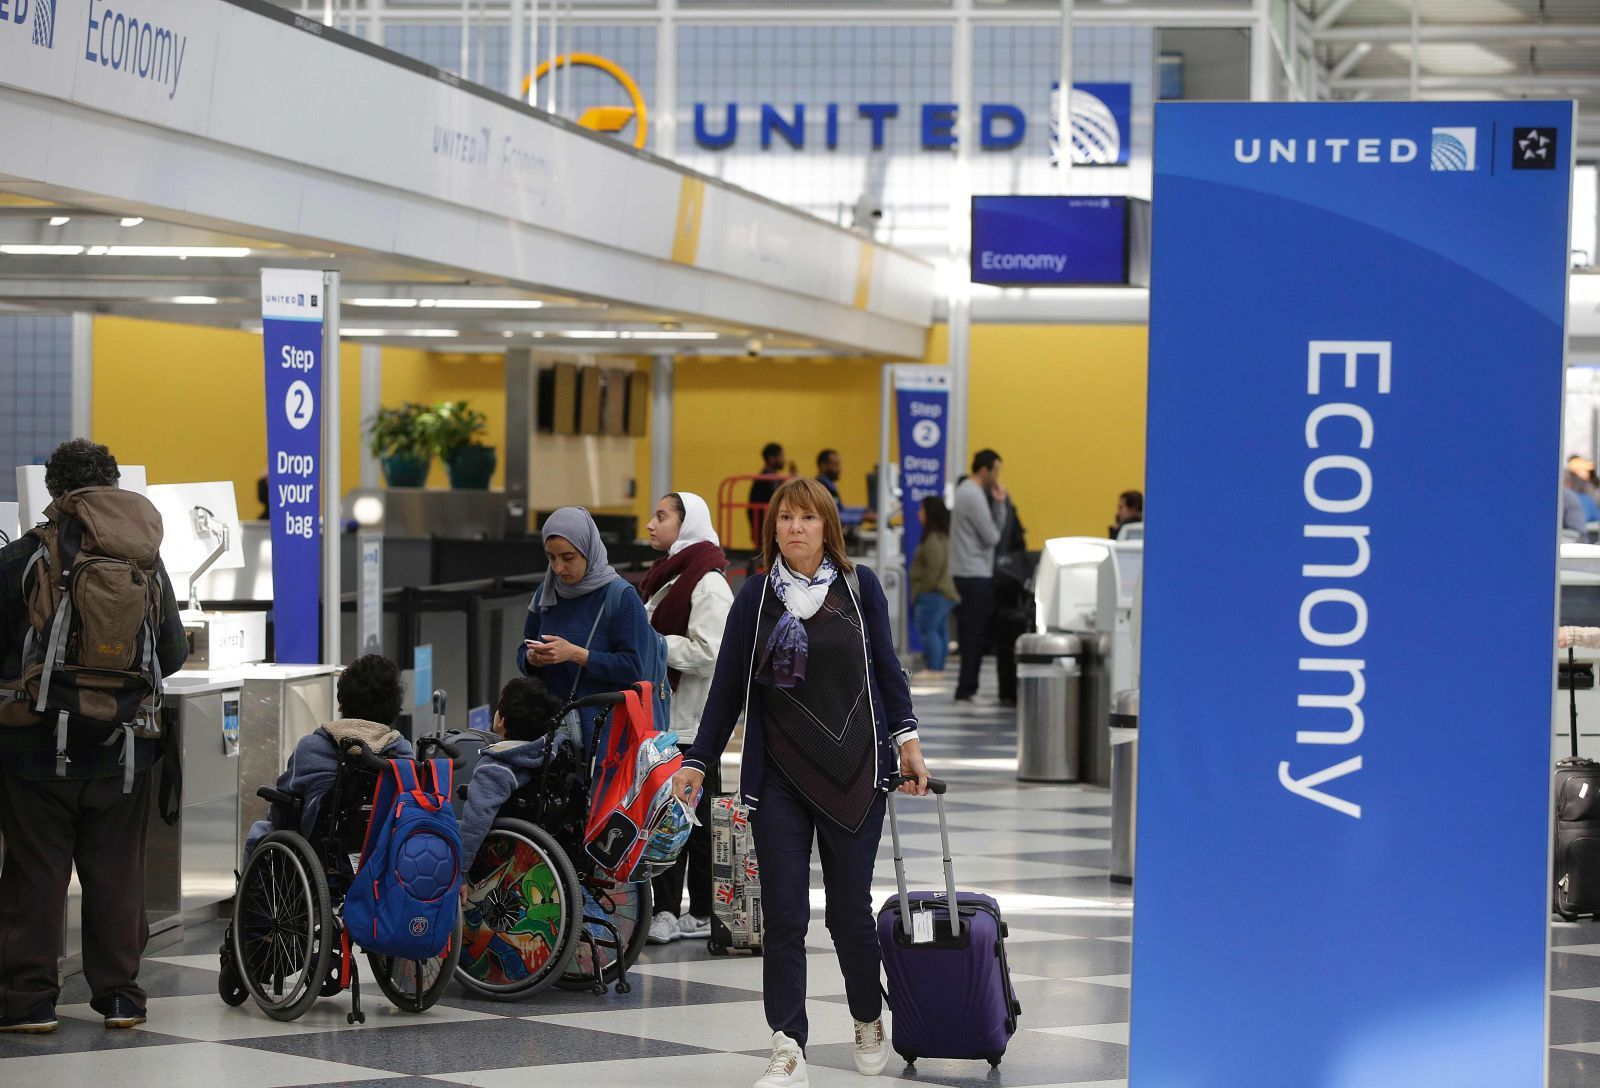 United changes crew booking policy after passenger dragged